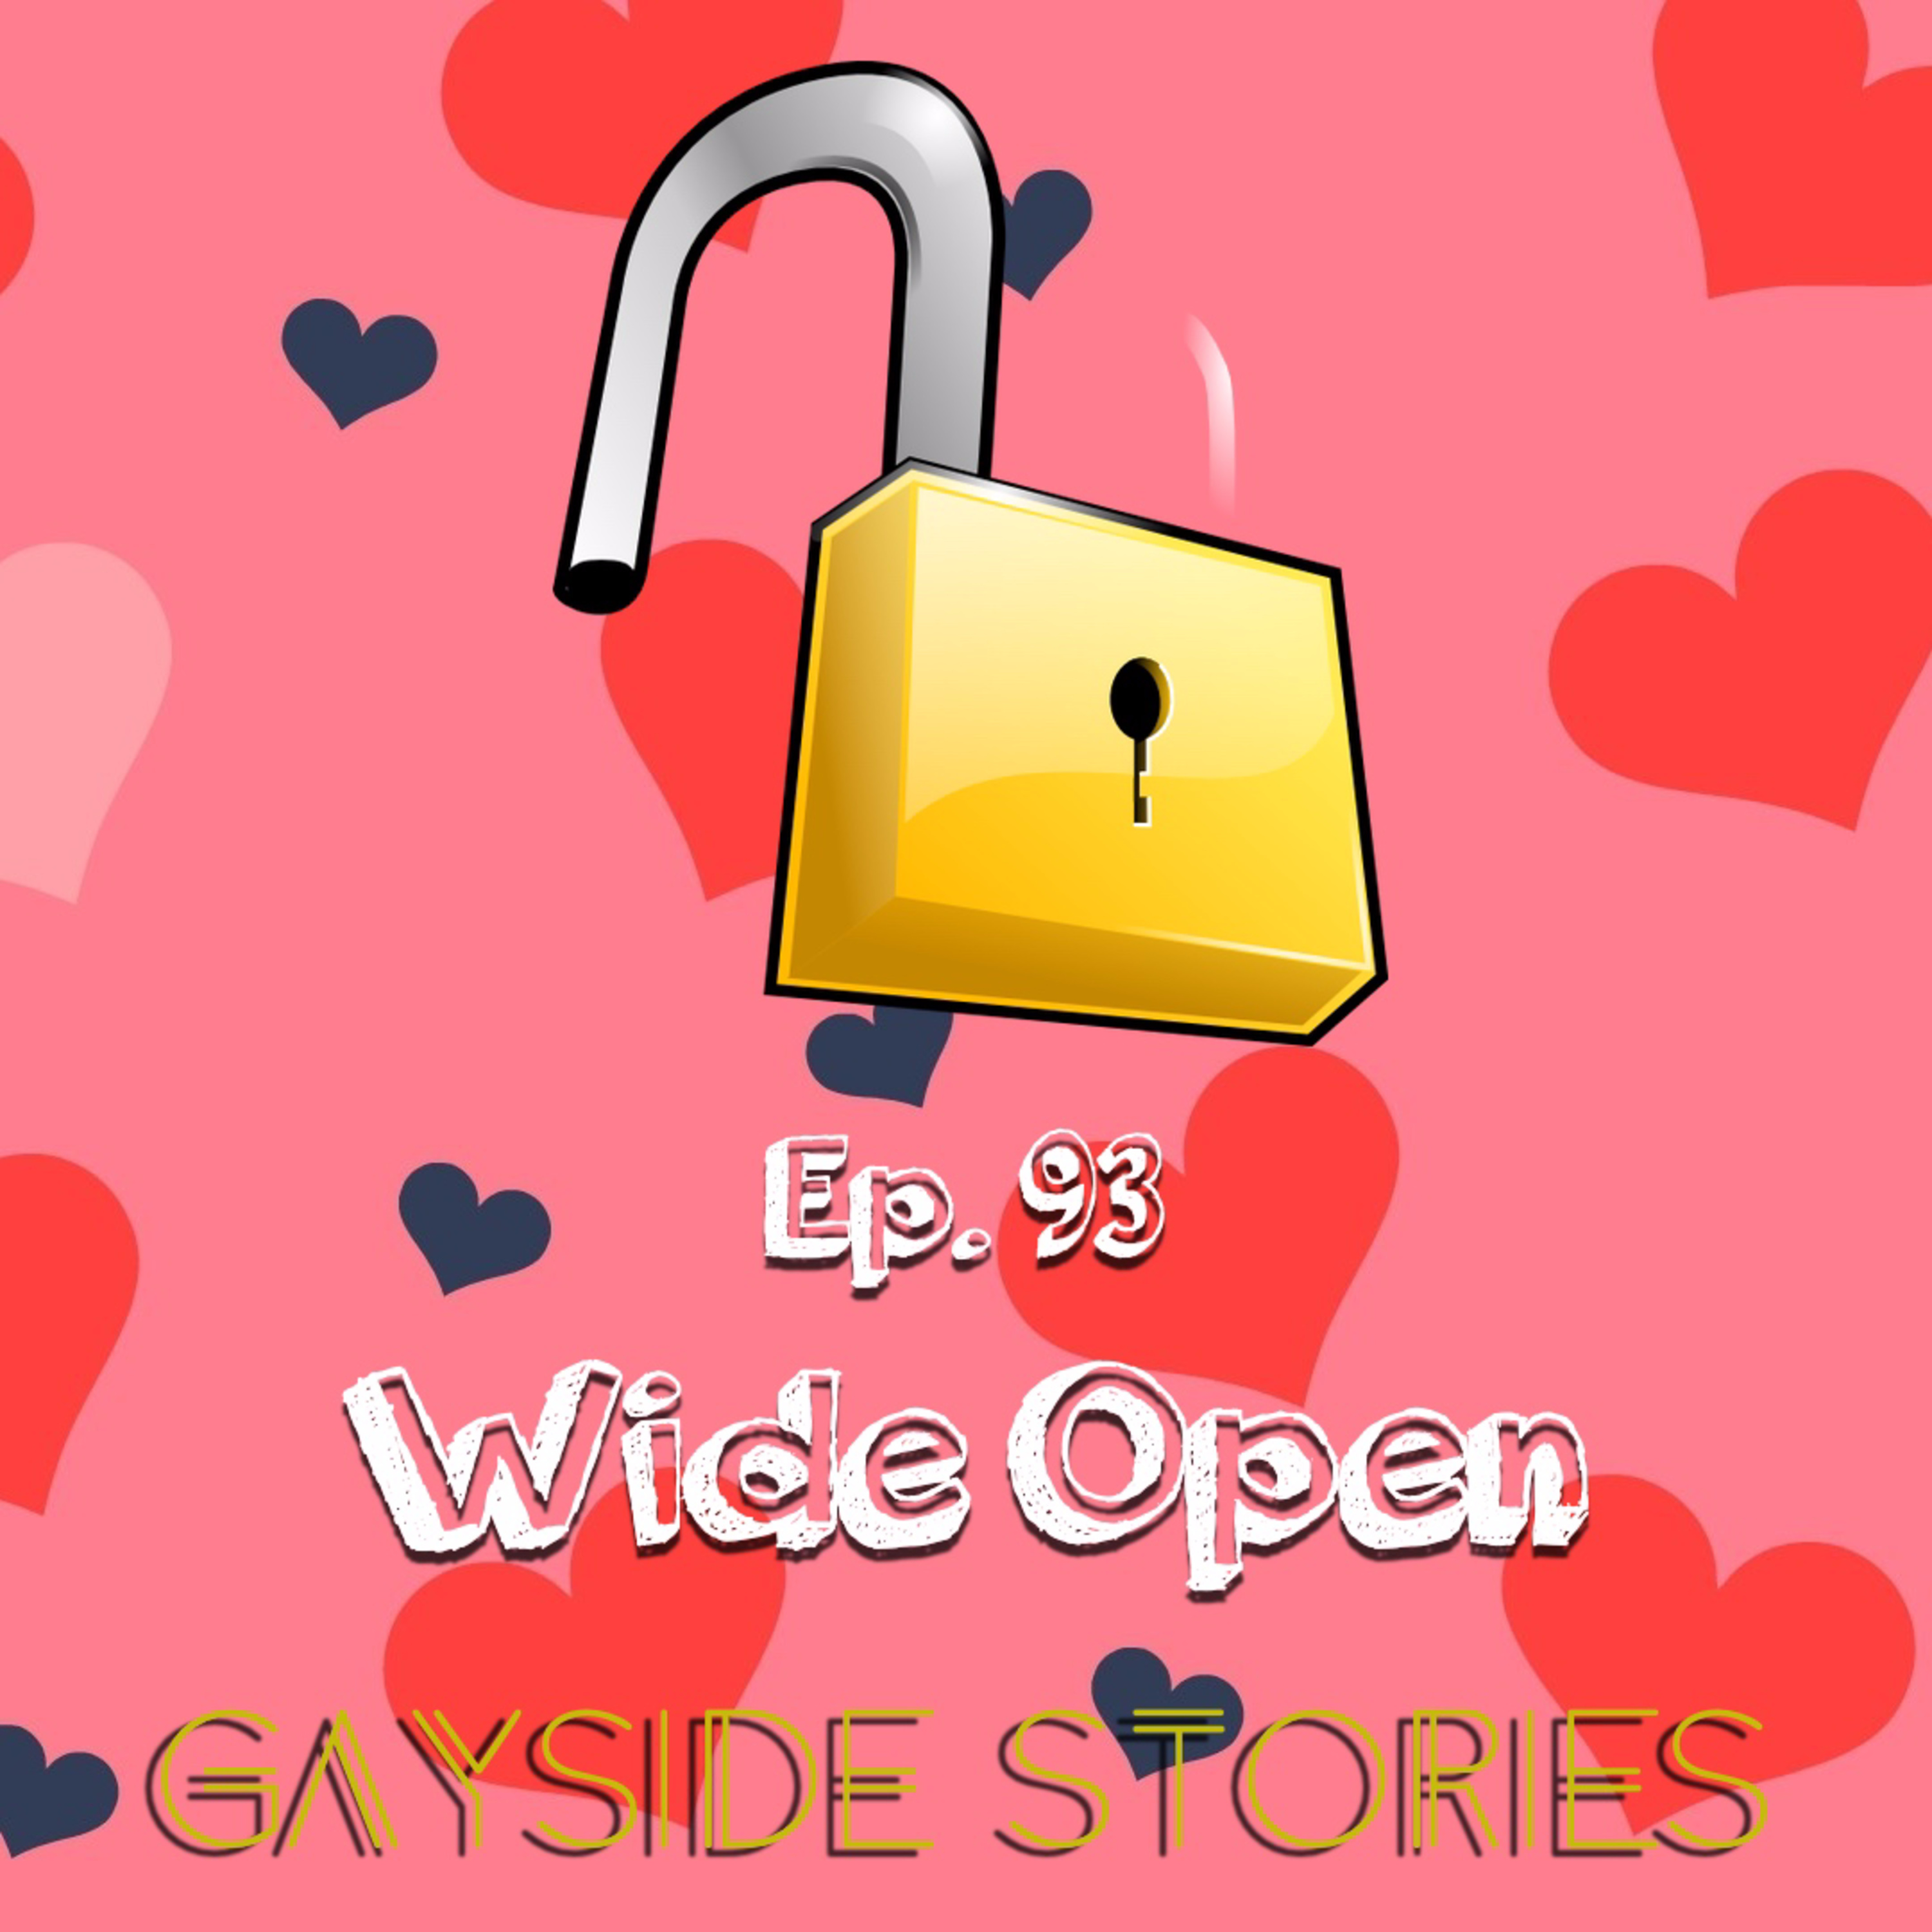 Ep. 93 - Wide Open (feat. Lonnie of the WRYH Podcast)